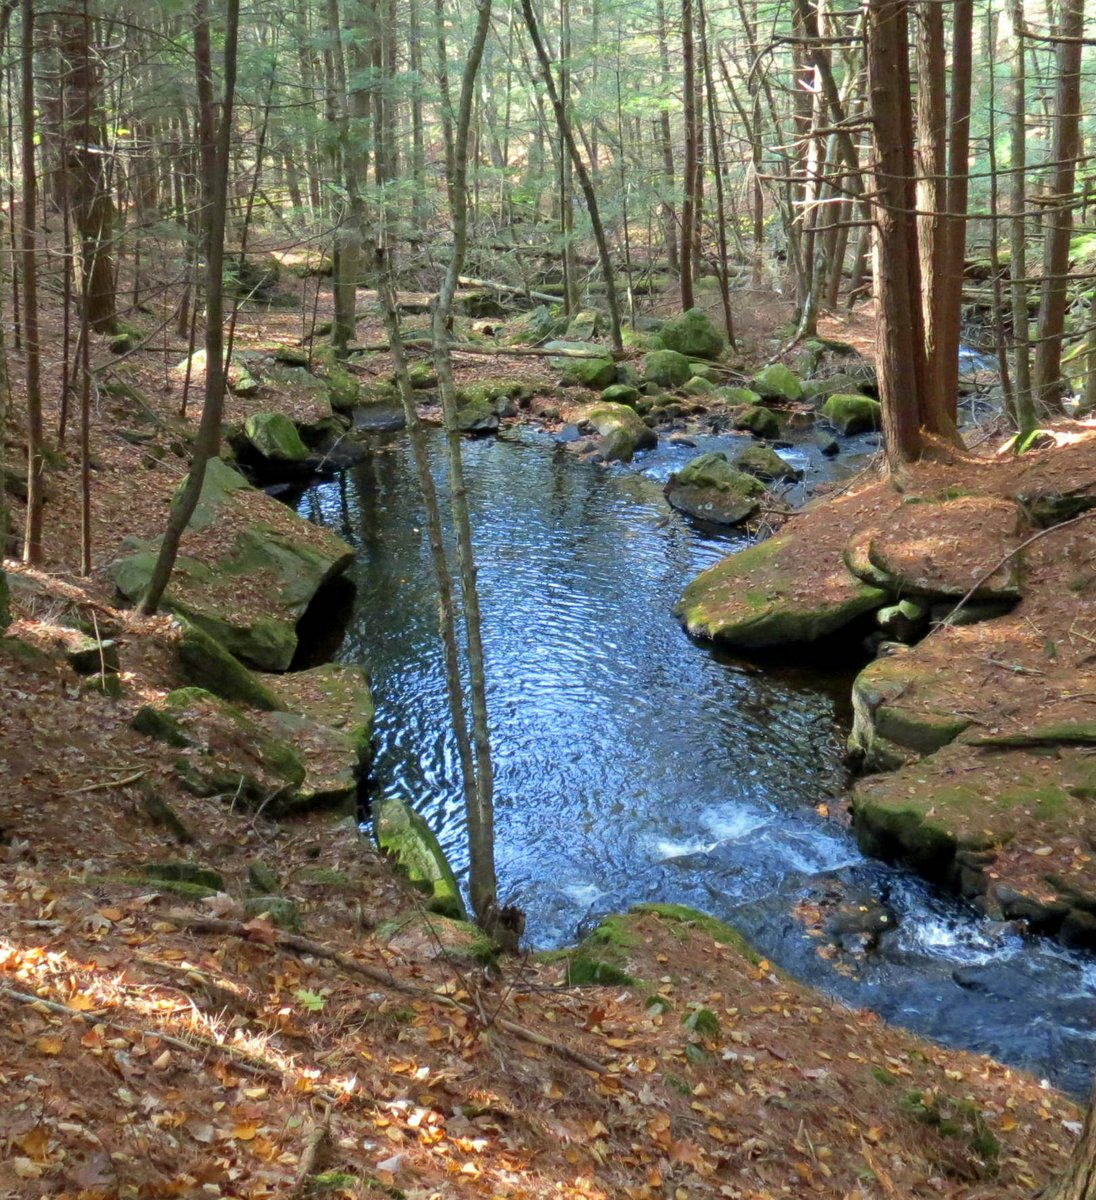 6. Pool in Brickyard Brook